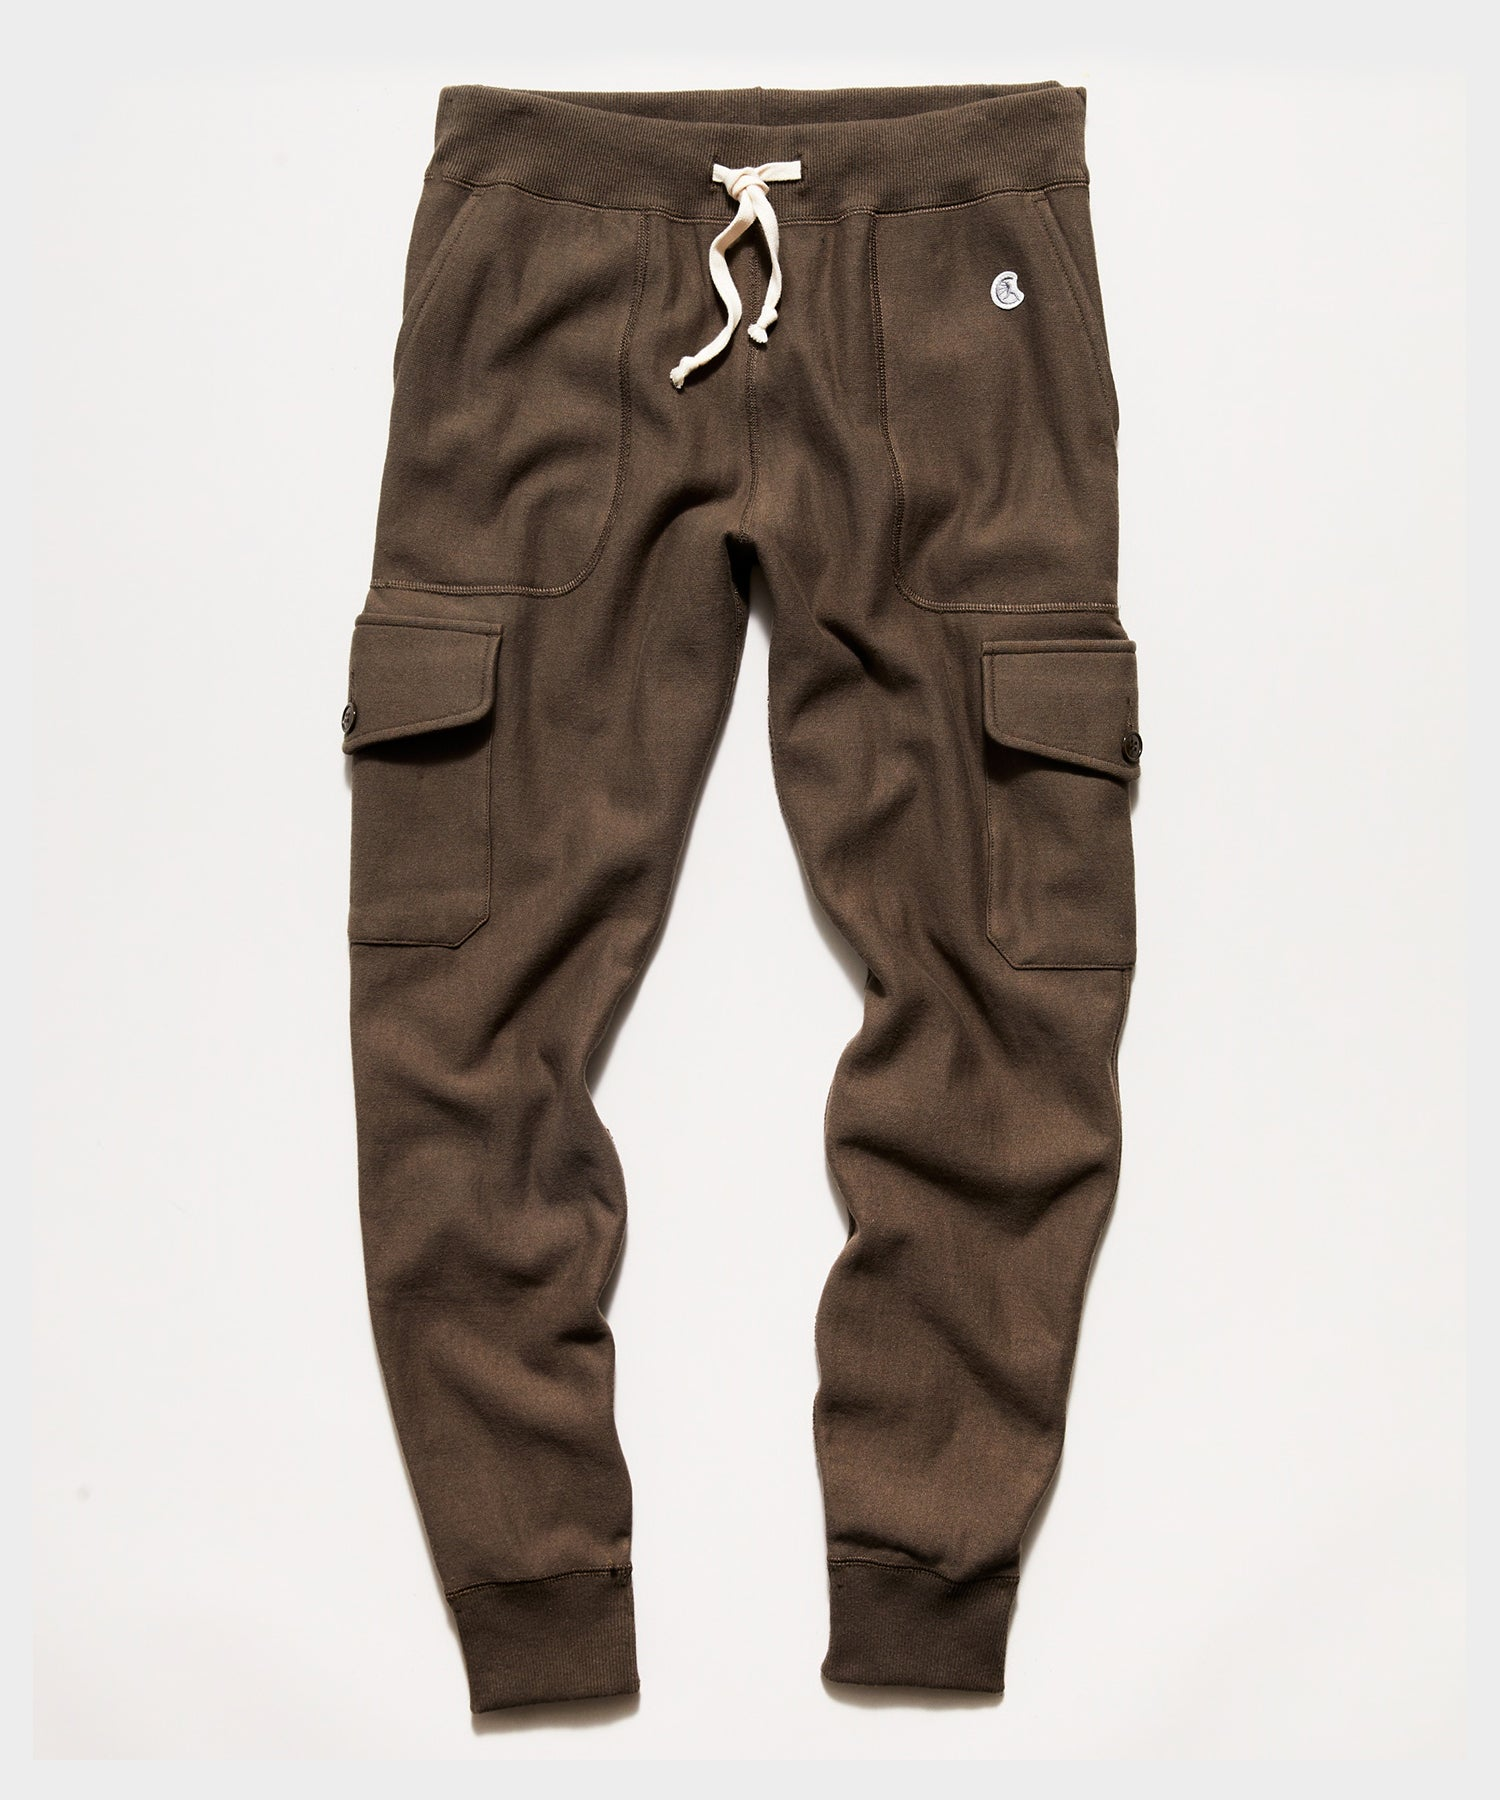 Utility Pocket Sweatpant in Olive Drab